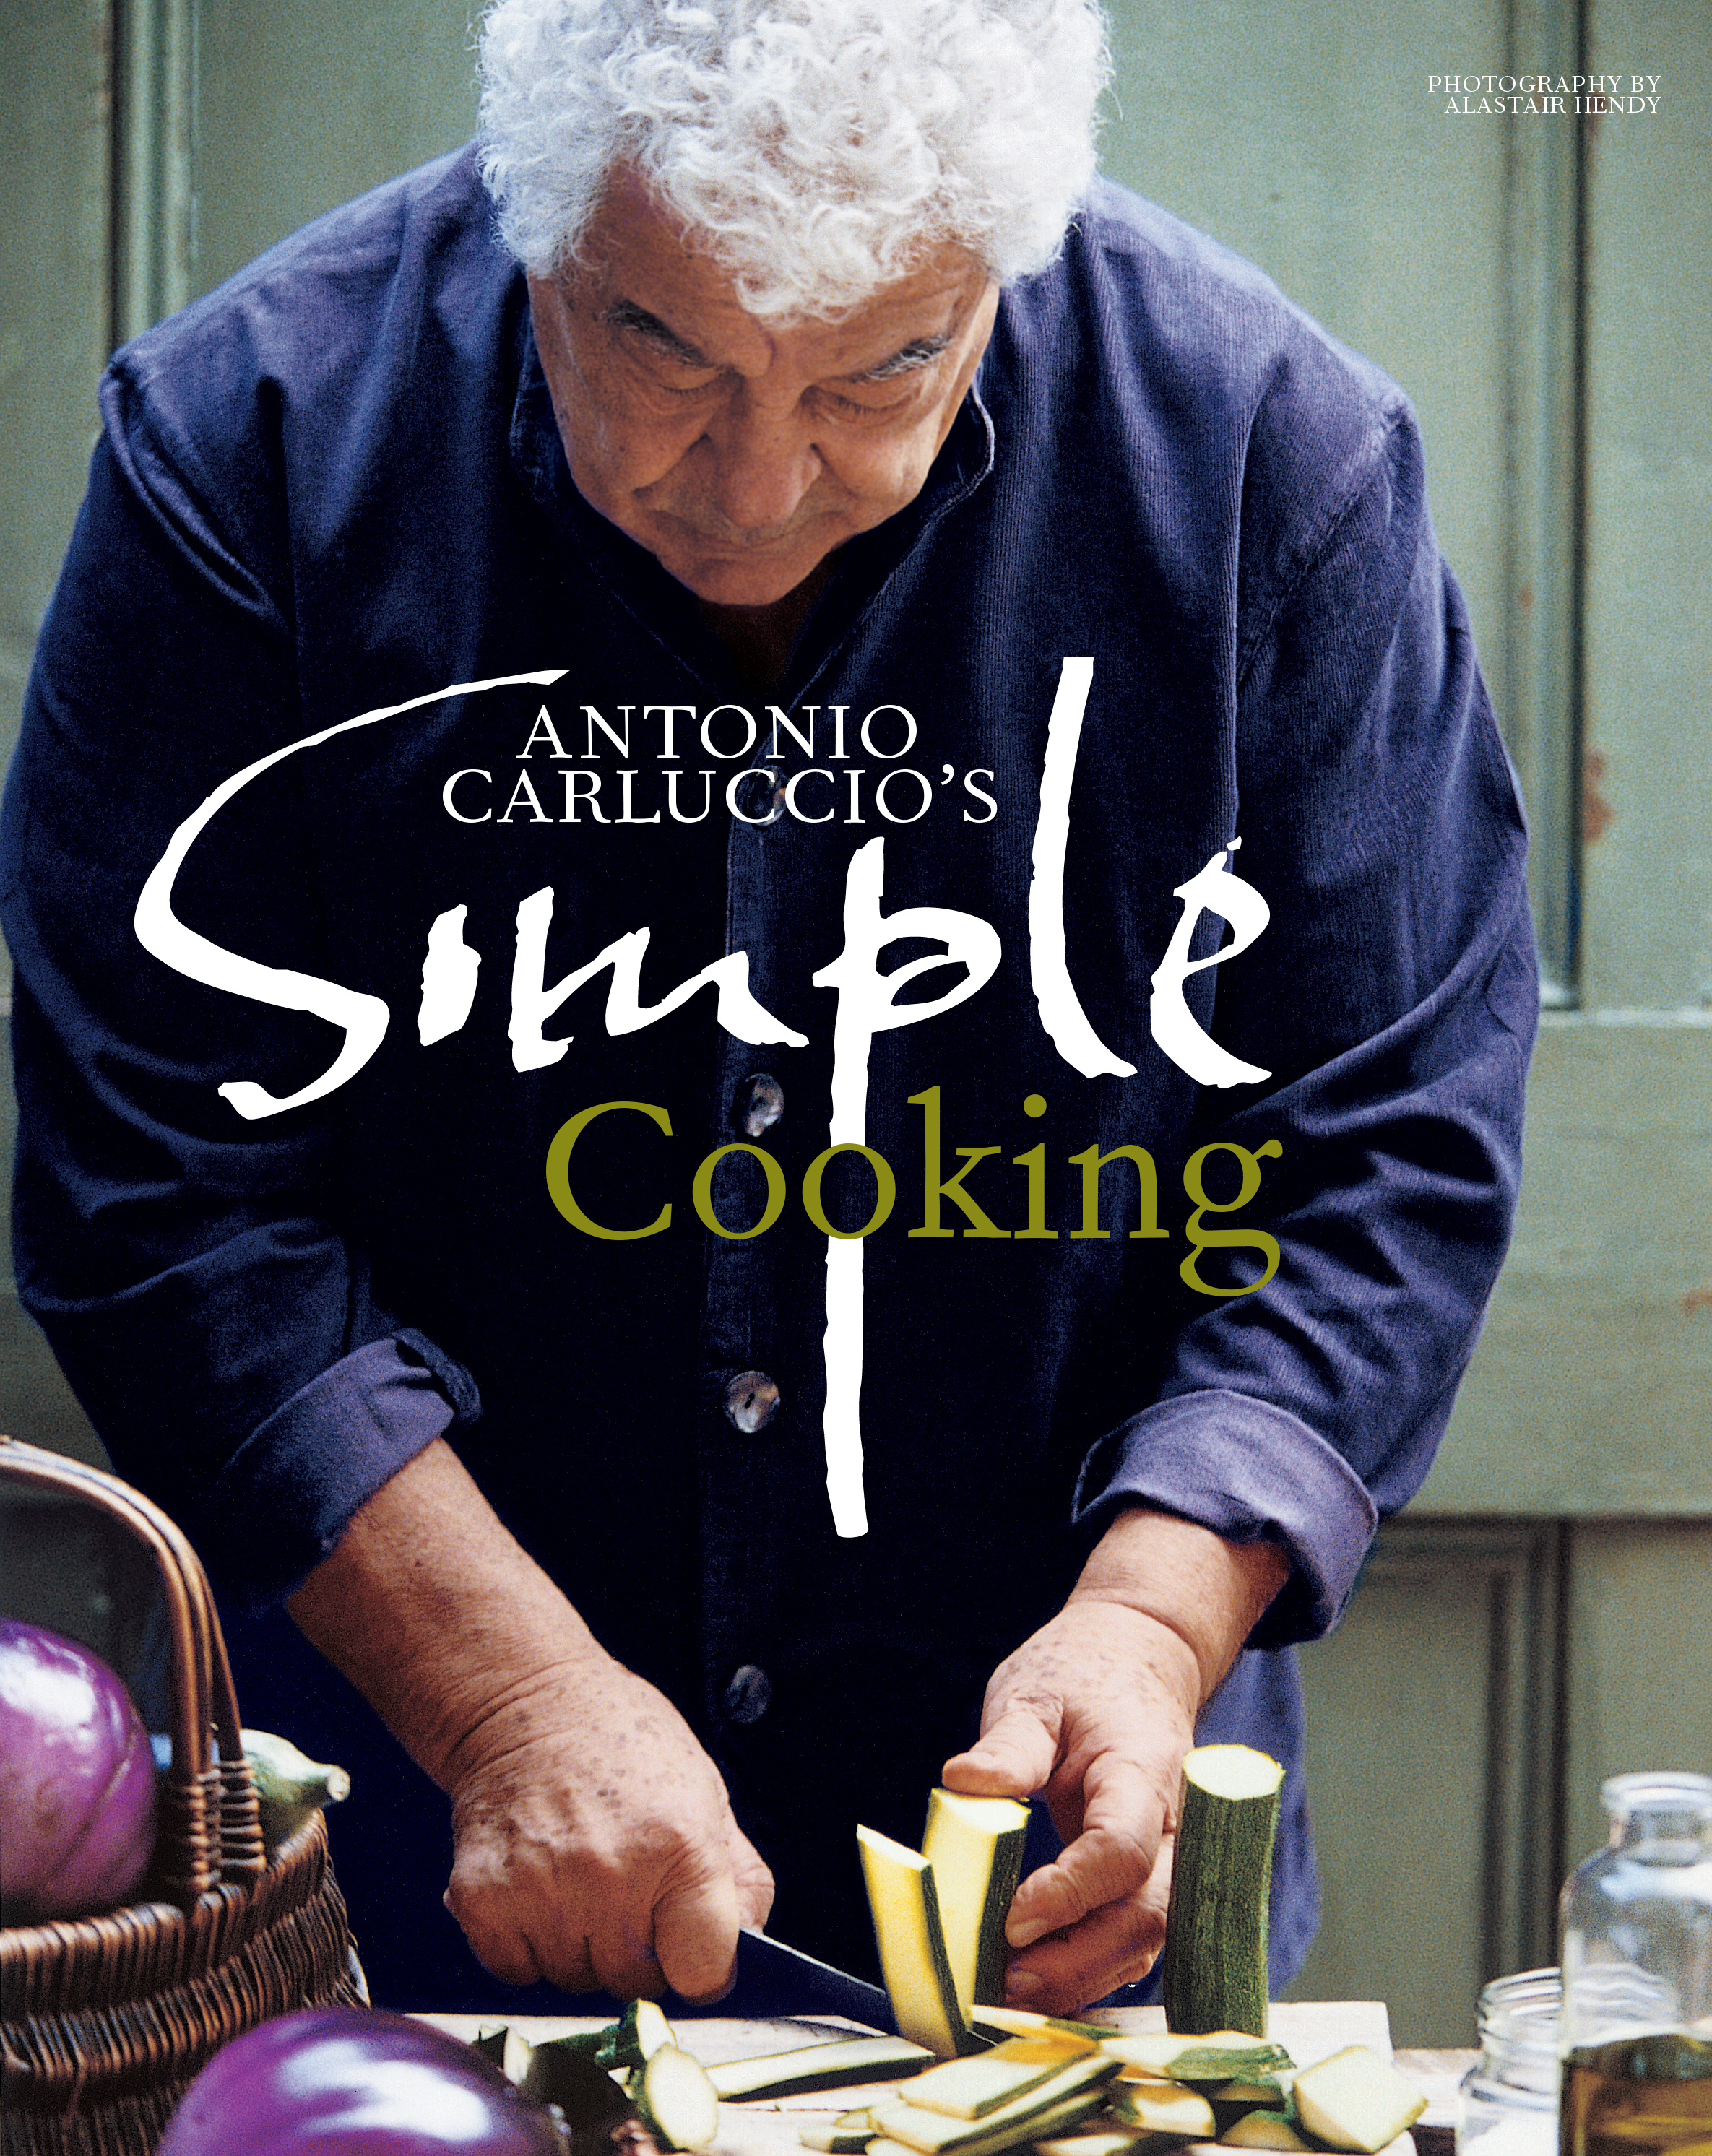 Antonio Carluccio's Simple Cooking. Photography by Alastair Hendy